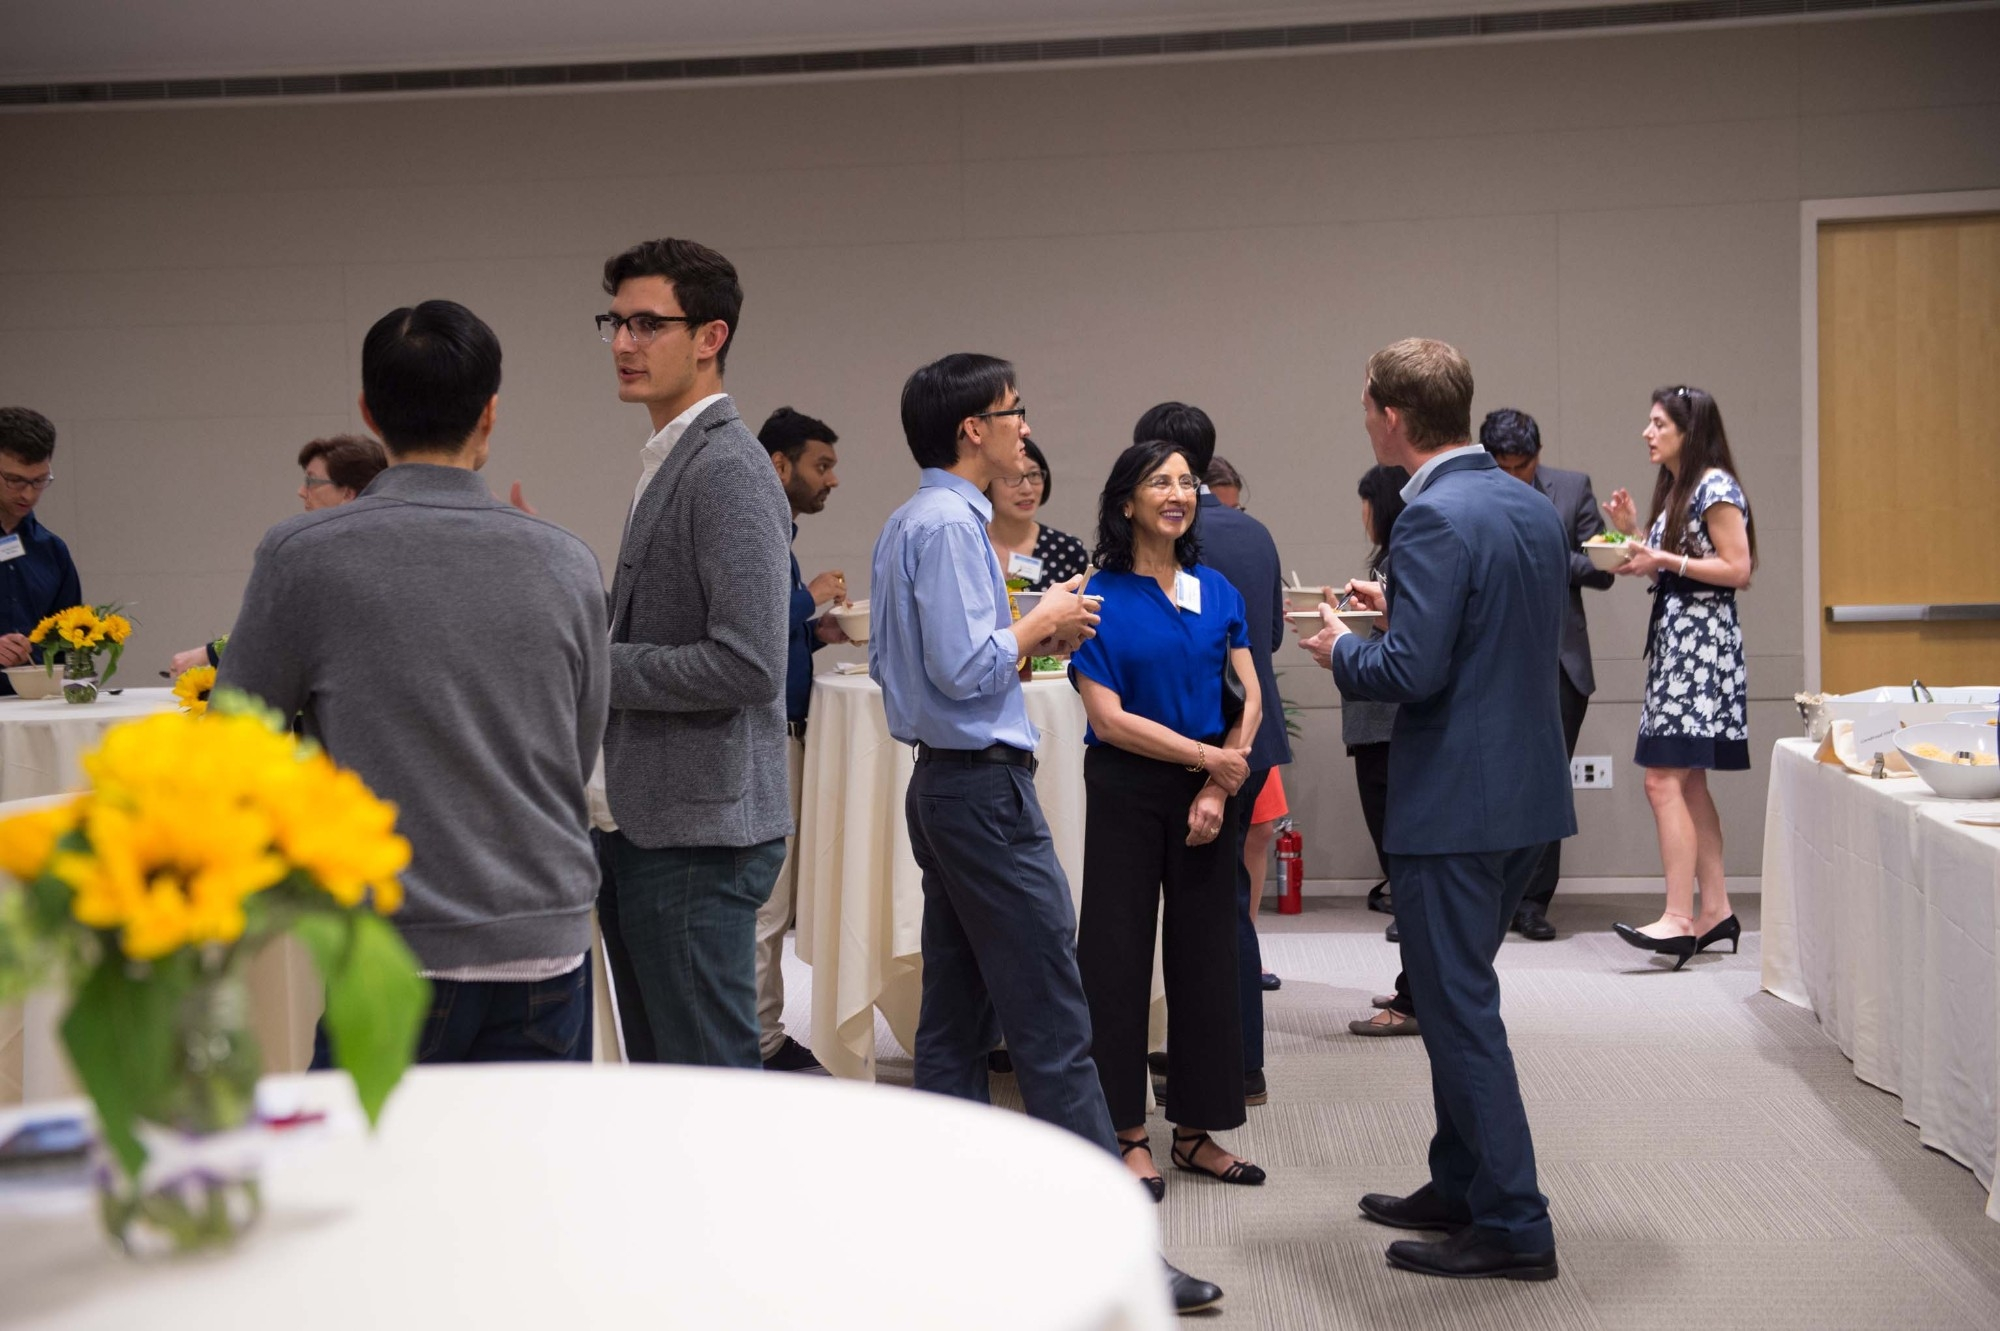 Blockchain talk and chili reception, photo by Diane Baldwin/RAND Corporation, p201904_02, event, panel, dinner